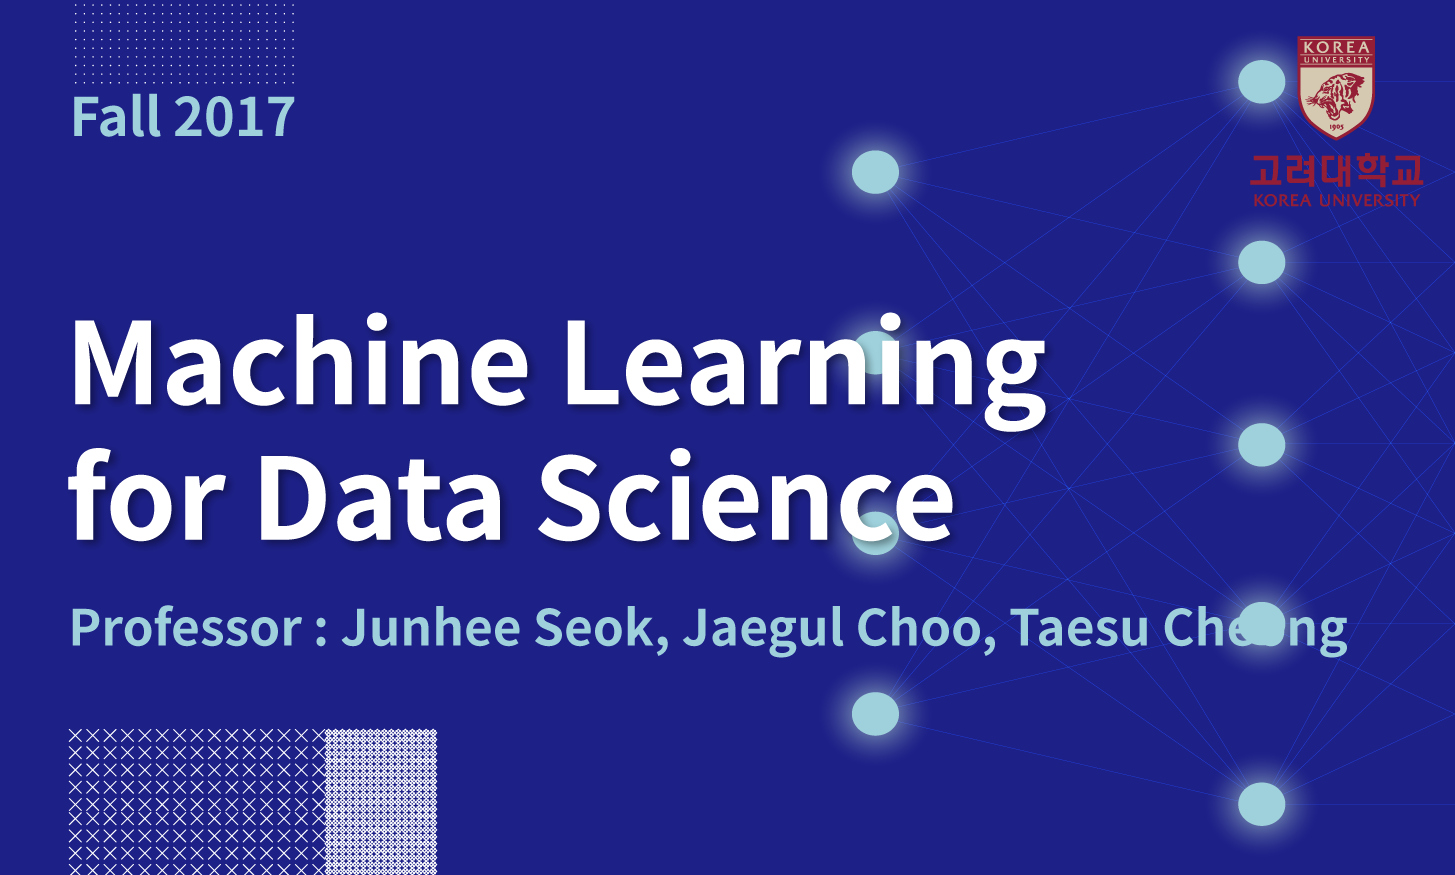 Machine Learning for Data Science 개강일 2017-10-17 종강일 2018-01-30 강좌상태 종료